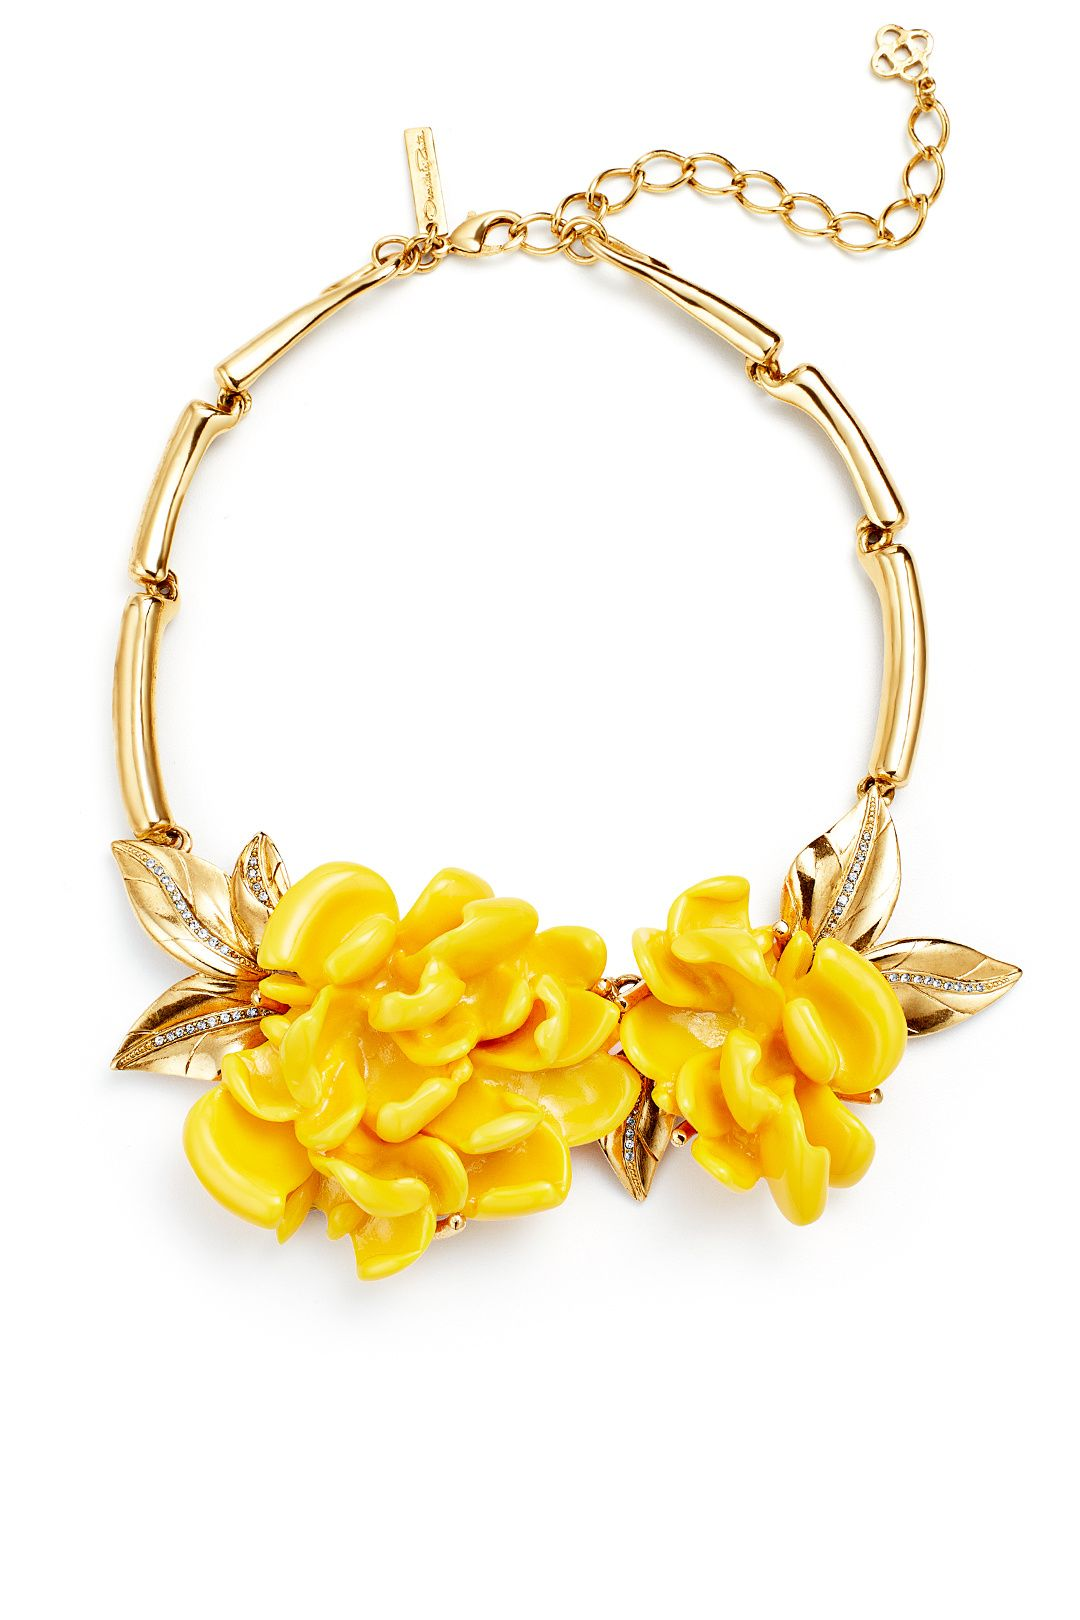 2bbca0b6c Rent Marigold Resin Flower Necklace by Oscar de la Renta for $125 only at  Rent the Runway.